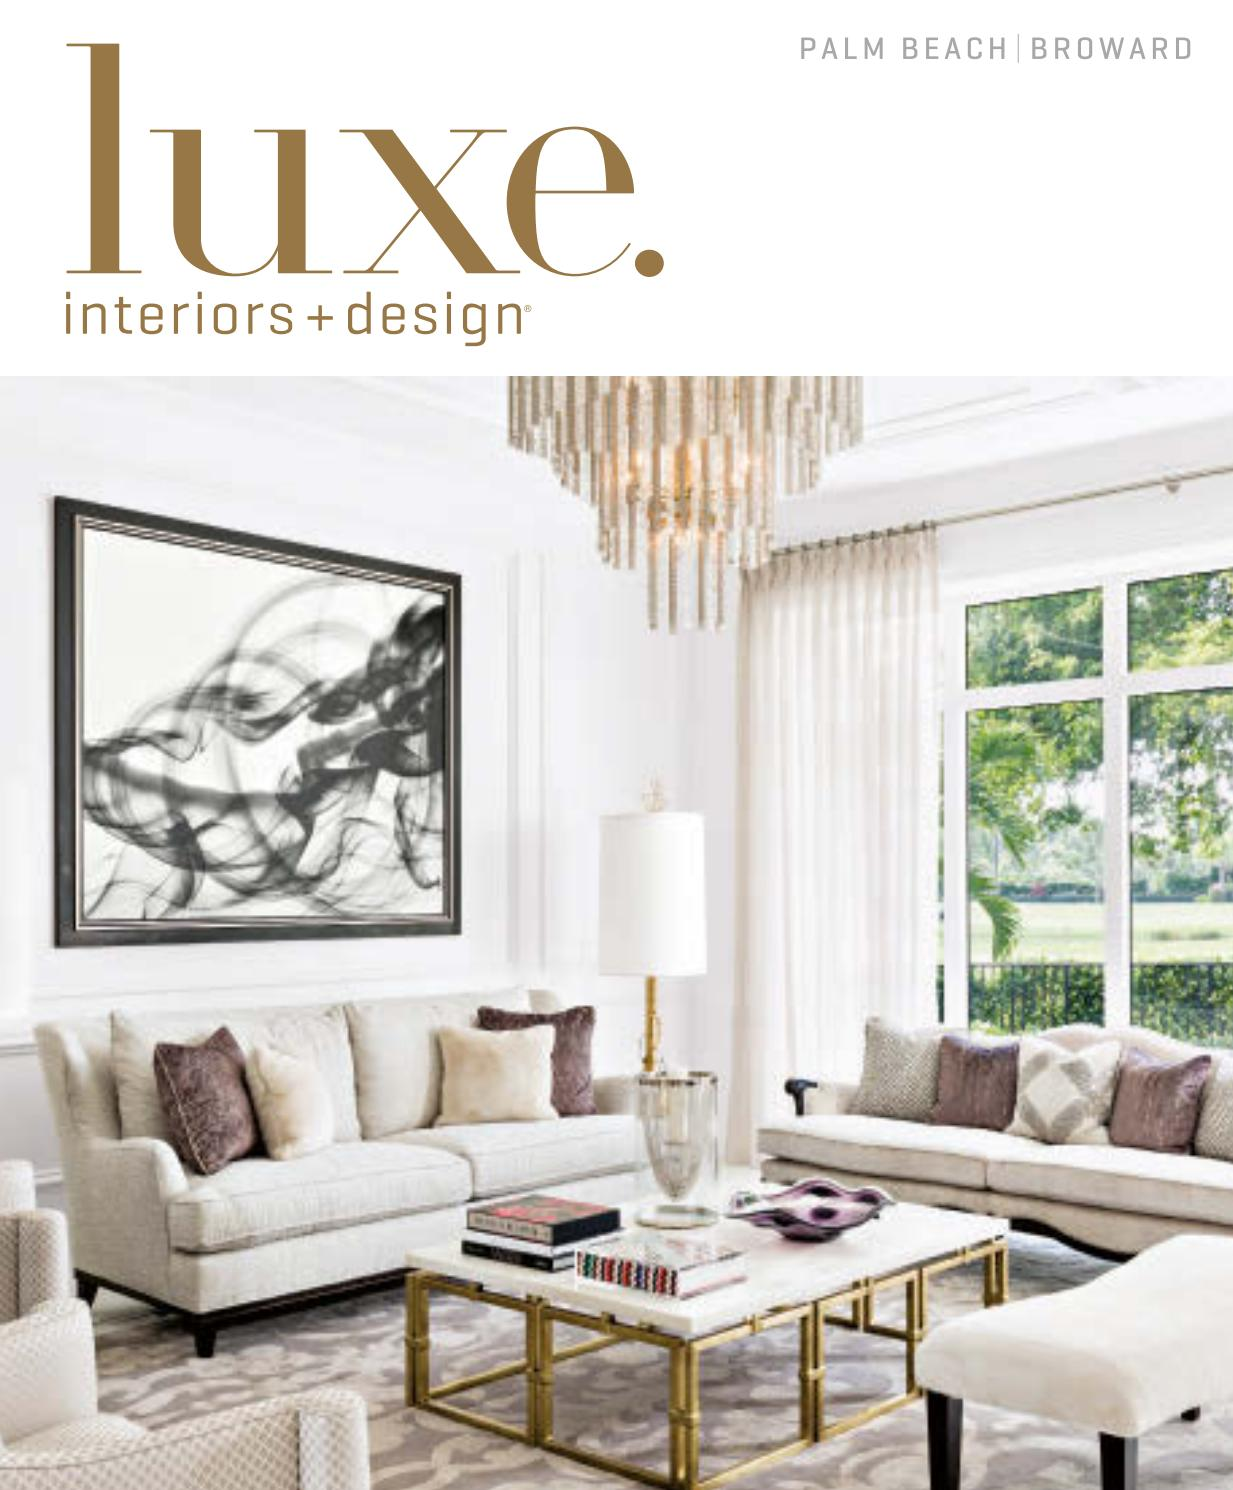 luxe magazine palm beach sandow issuu page uttermost gin cube accent table dining room decor ideas pottery barn lorraine large gold lamp black and white rug very garden furniture